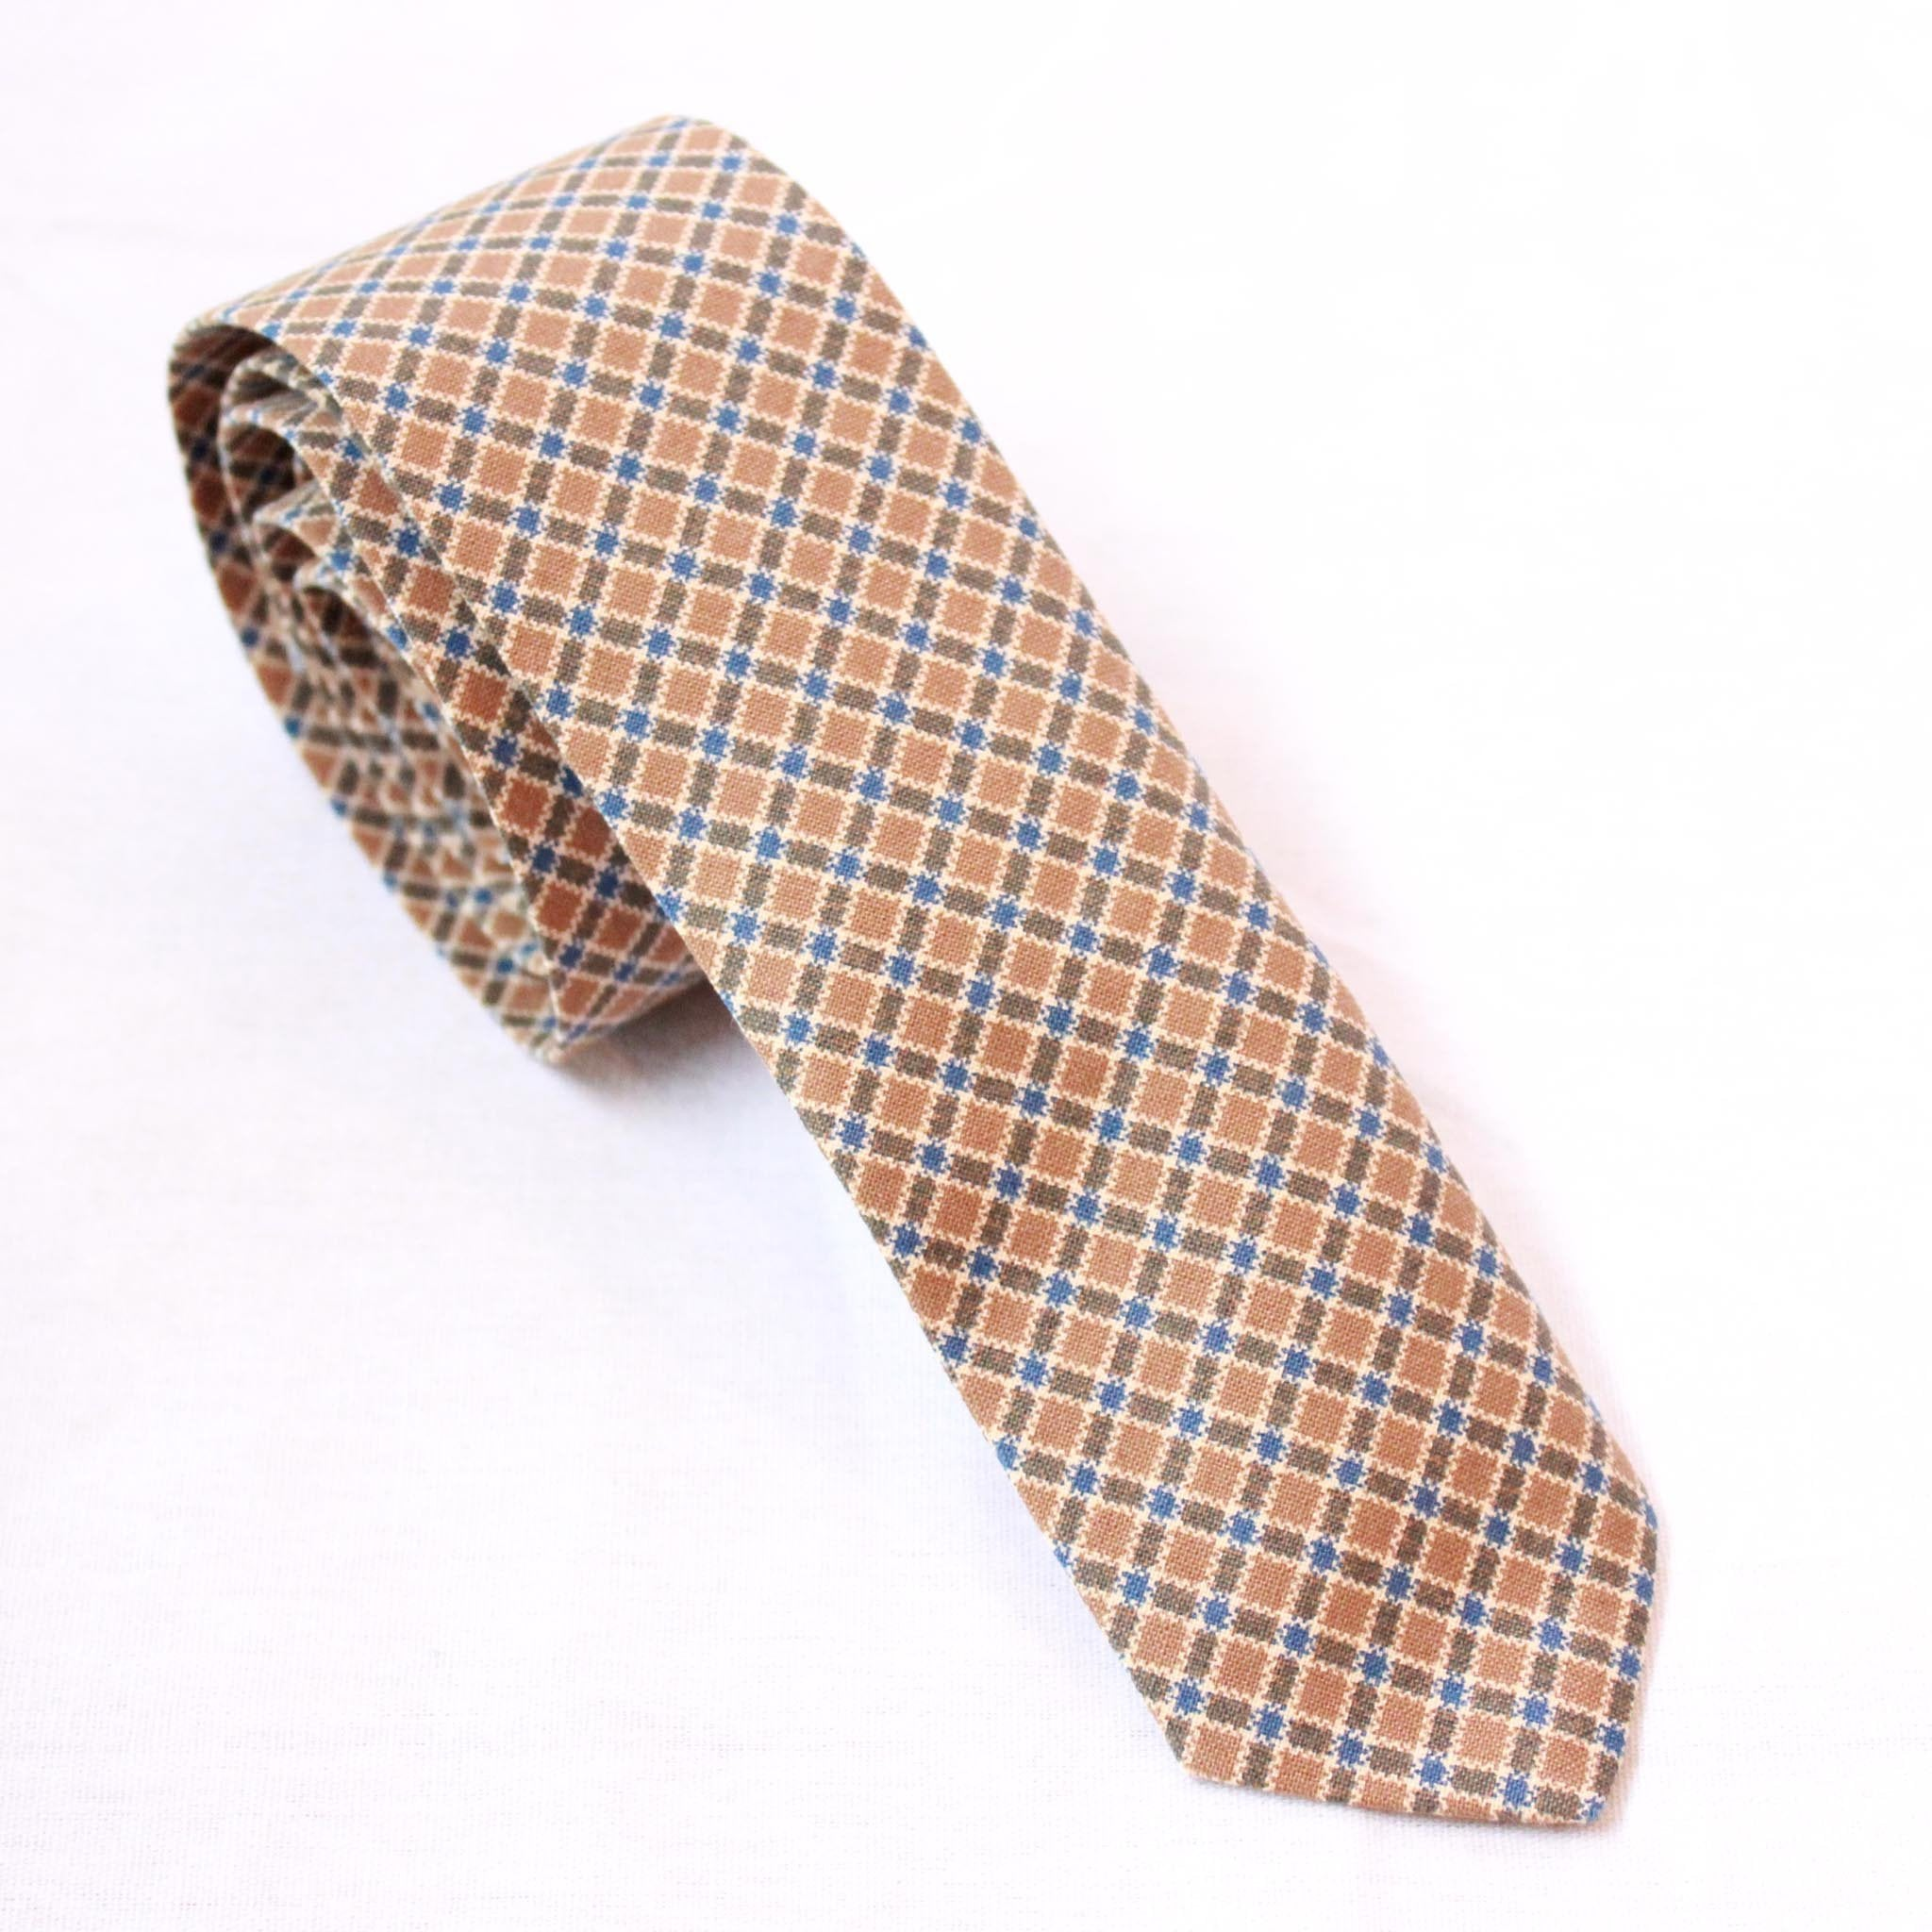 Mill City Fineries Old Gold and Blue Plaid Necktie